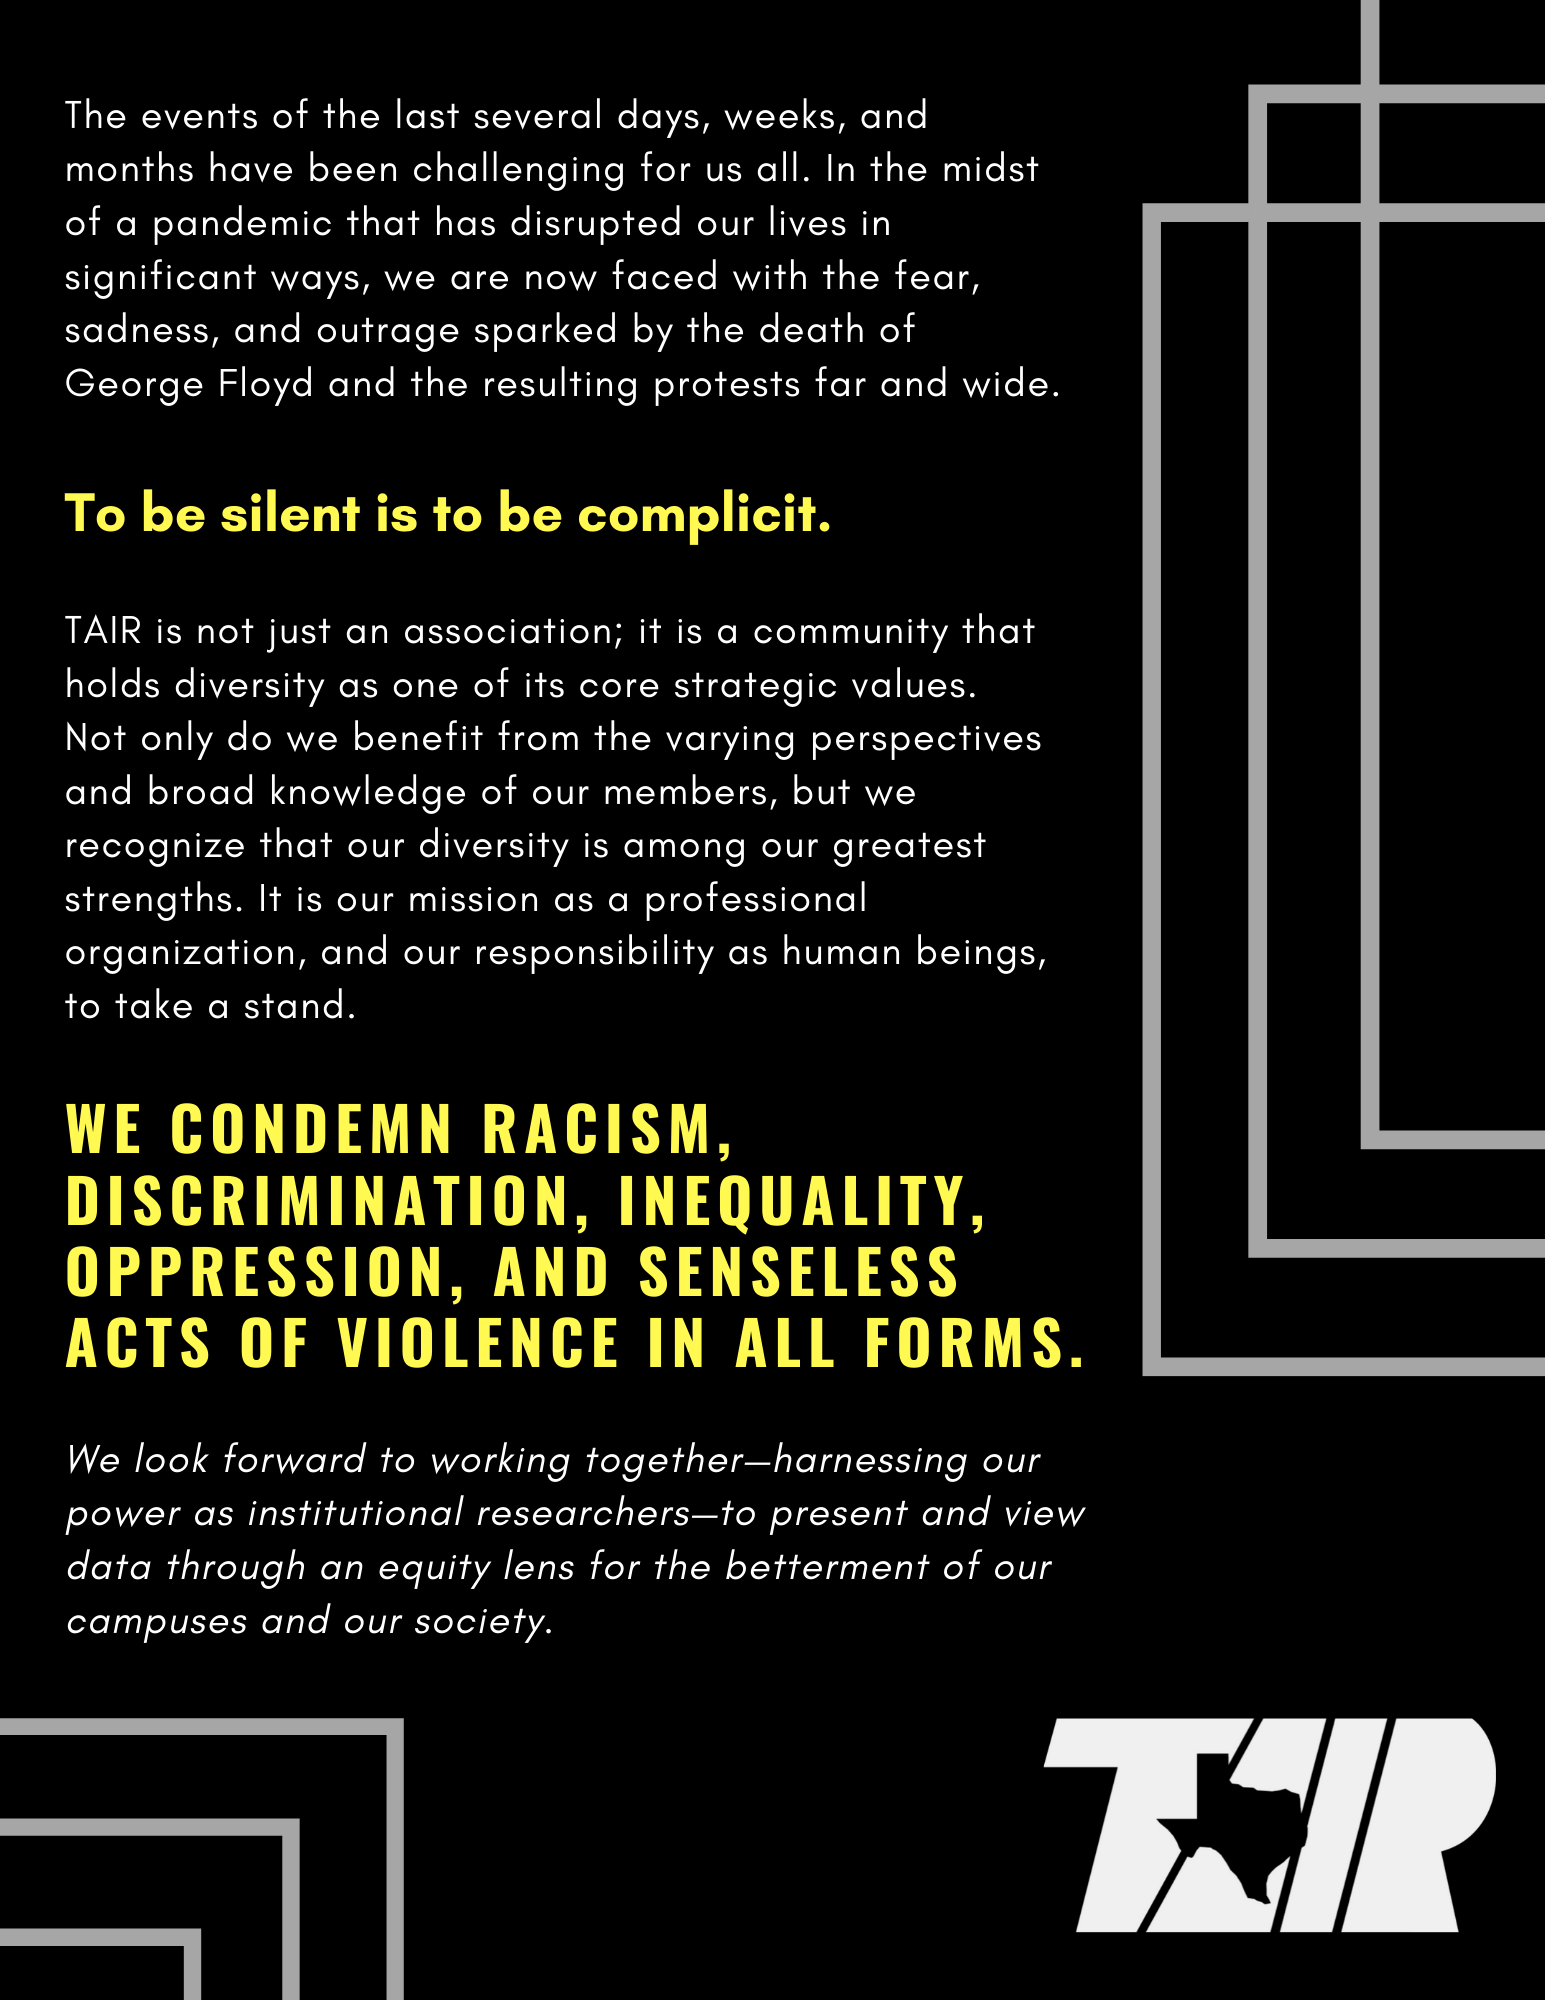 TAIR Statement on Diversity